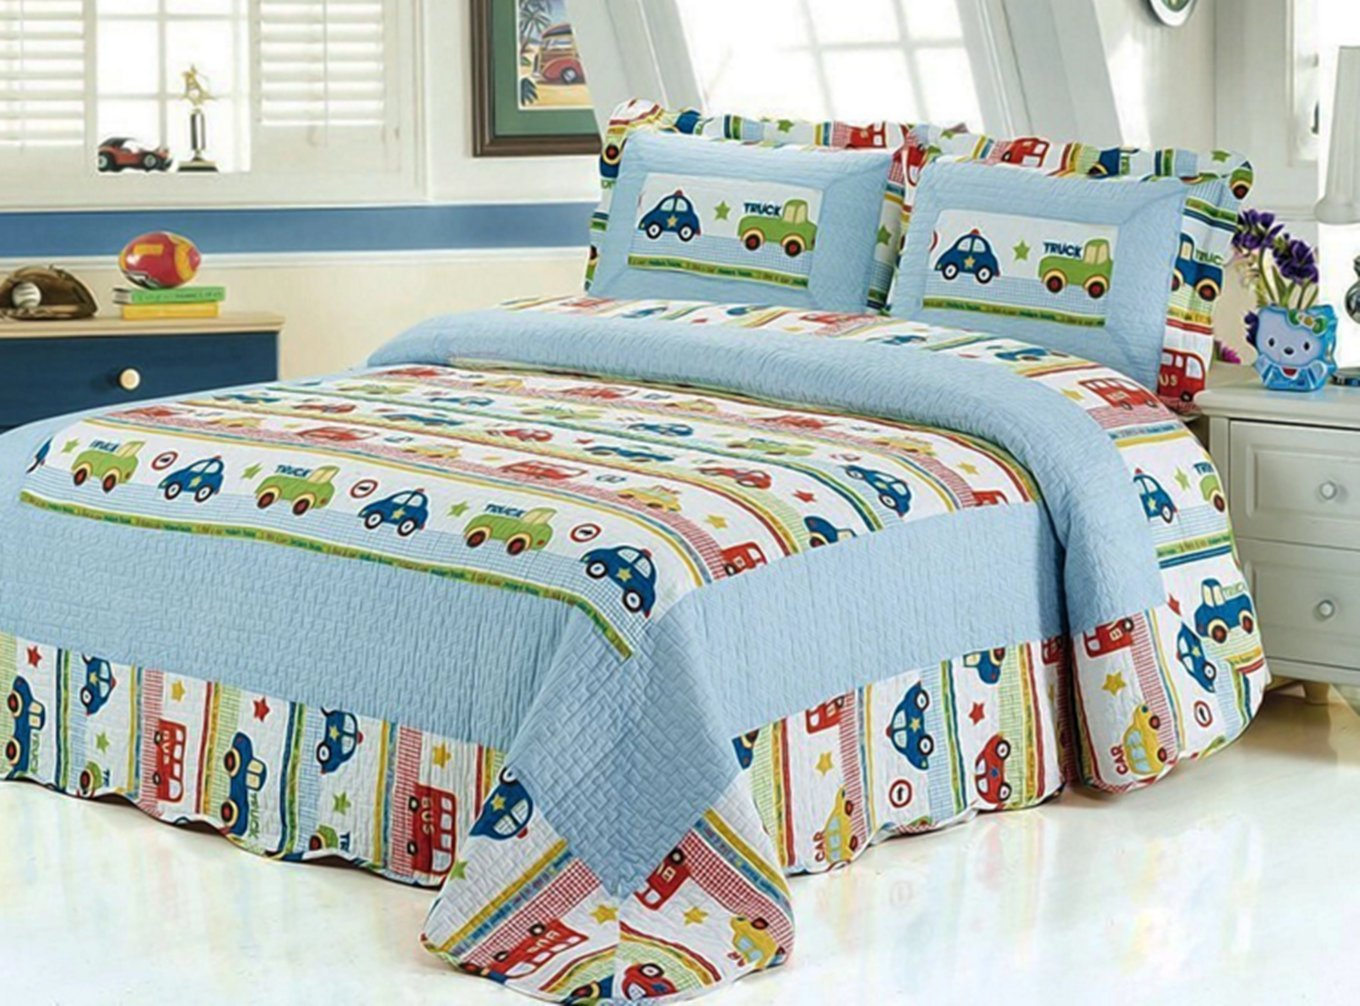 HNNSI Kids Boys Comforter Quilt Set TWIN Size 2PCS, Car and Truck Pattern Cotton Boys Car Sheet Bedspread Kids Bedding Sets (Twin, Trucks and Cars)